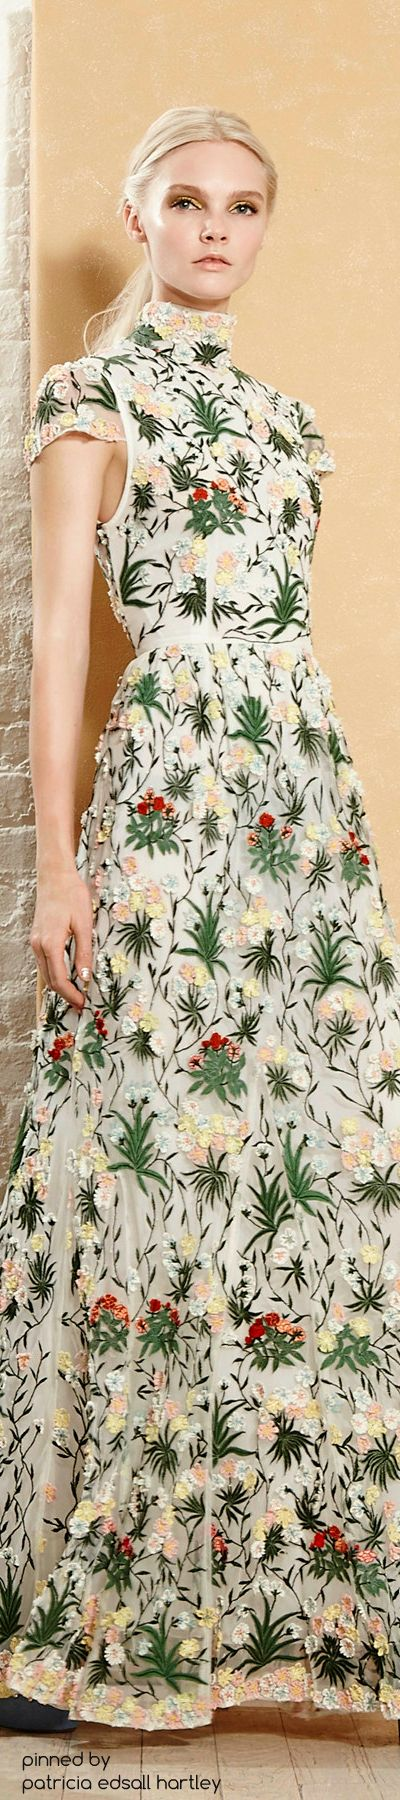 SPRING 2016 READY-TO-WEAR Alice + Olivia